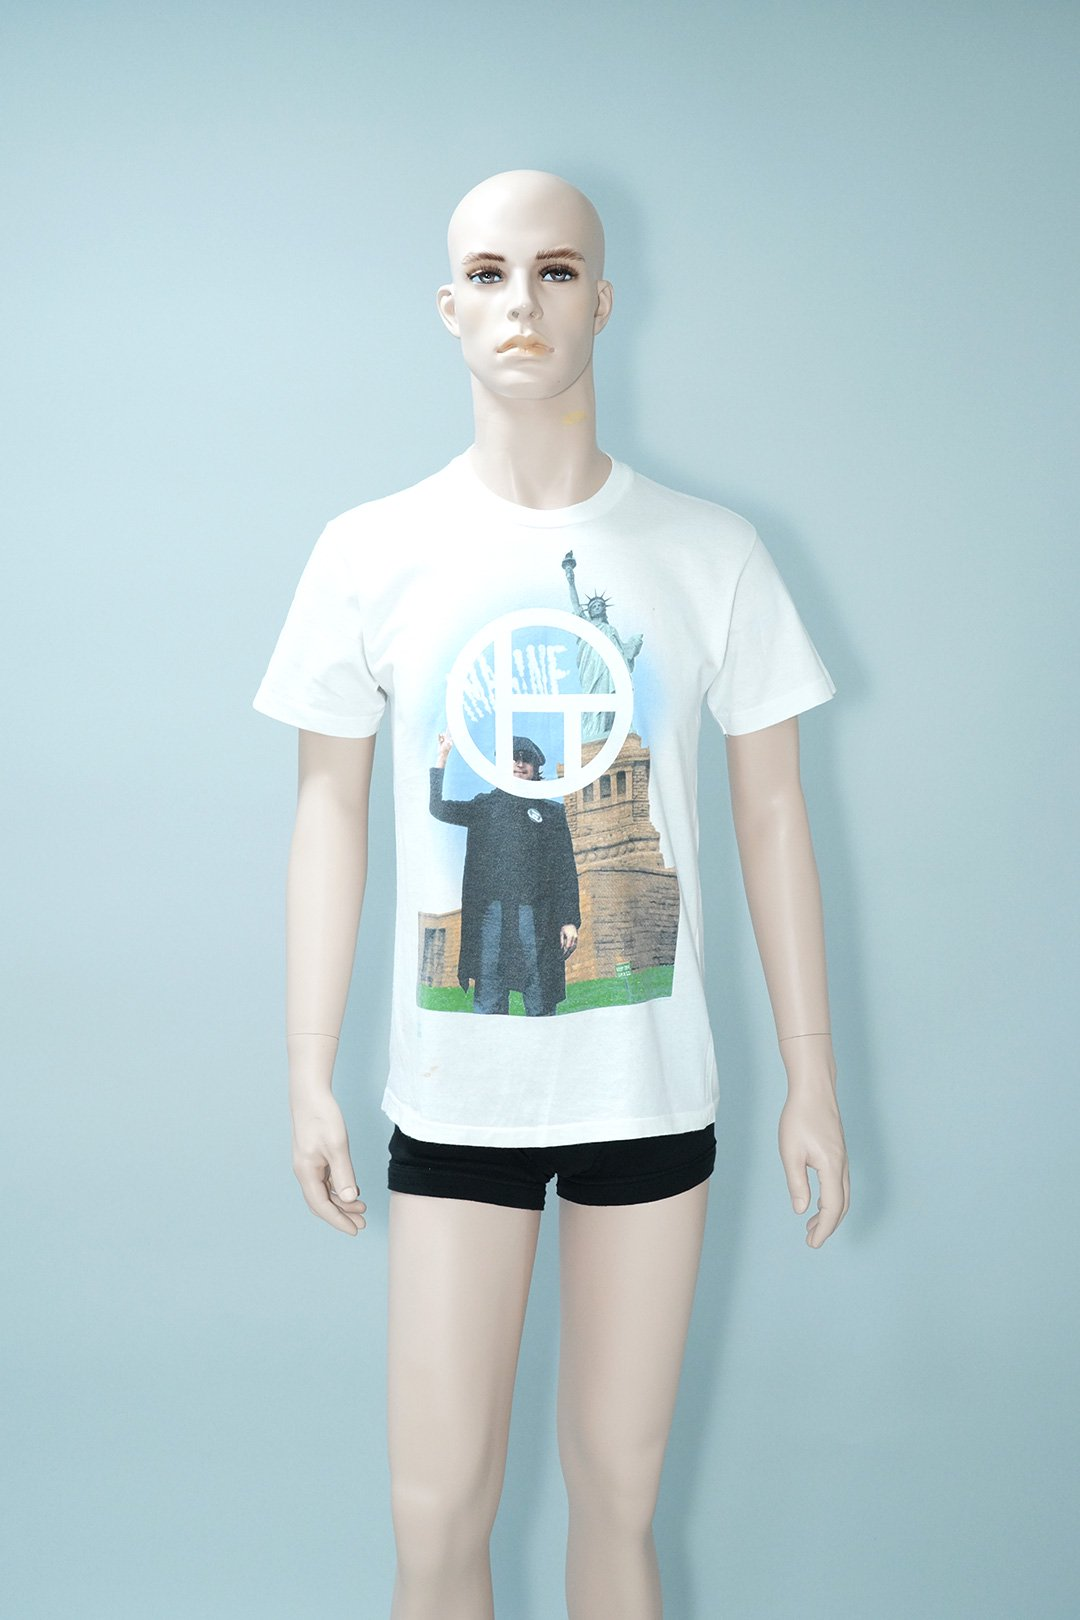 Vintage John Lennon Imagine 91' T-shirt